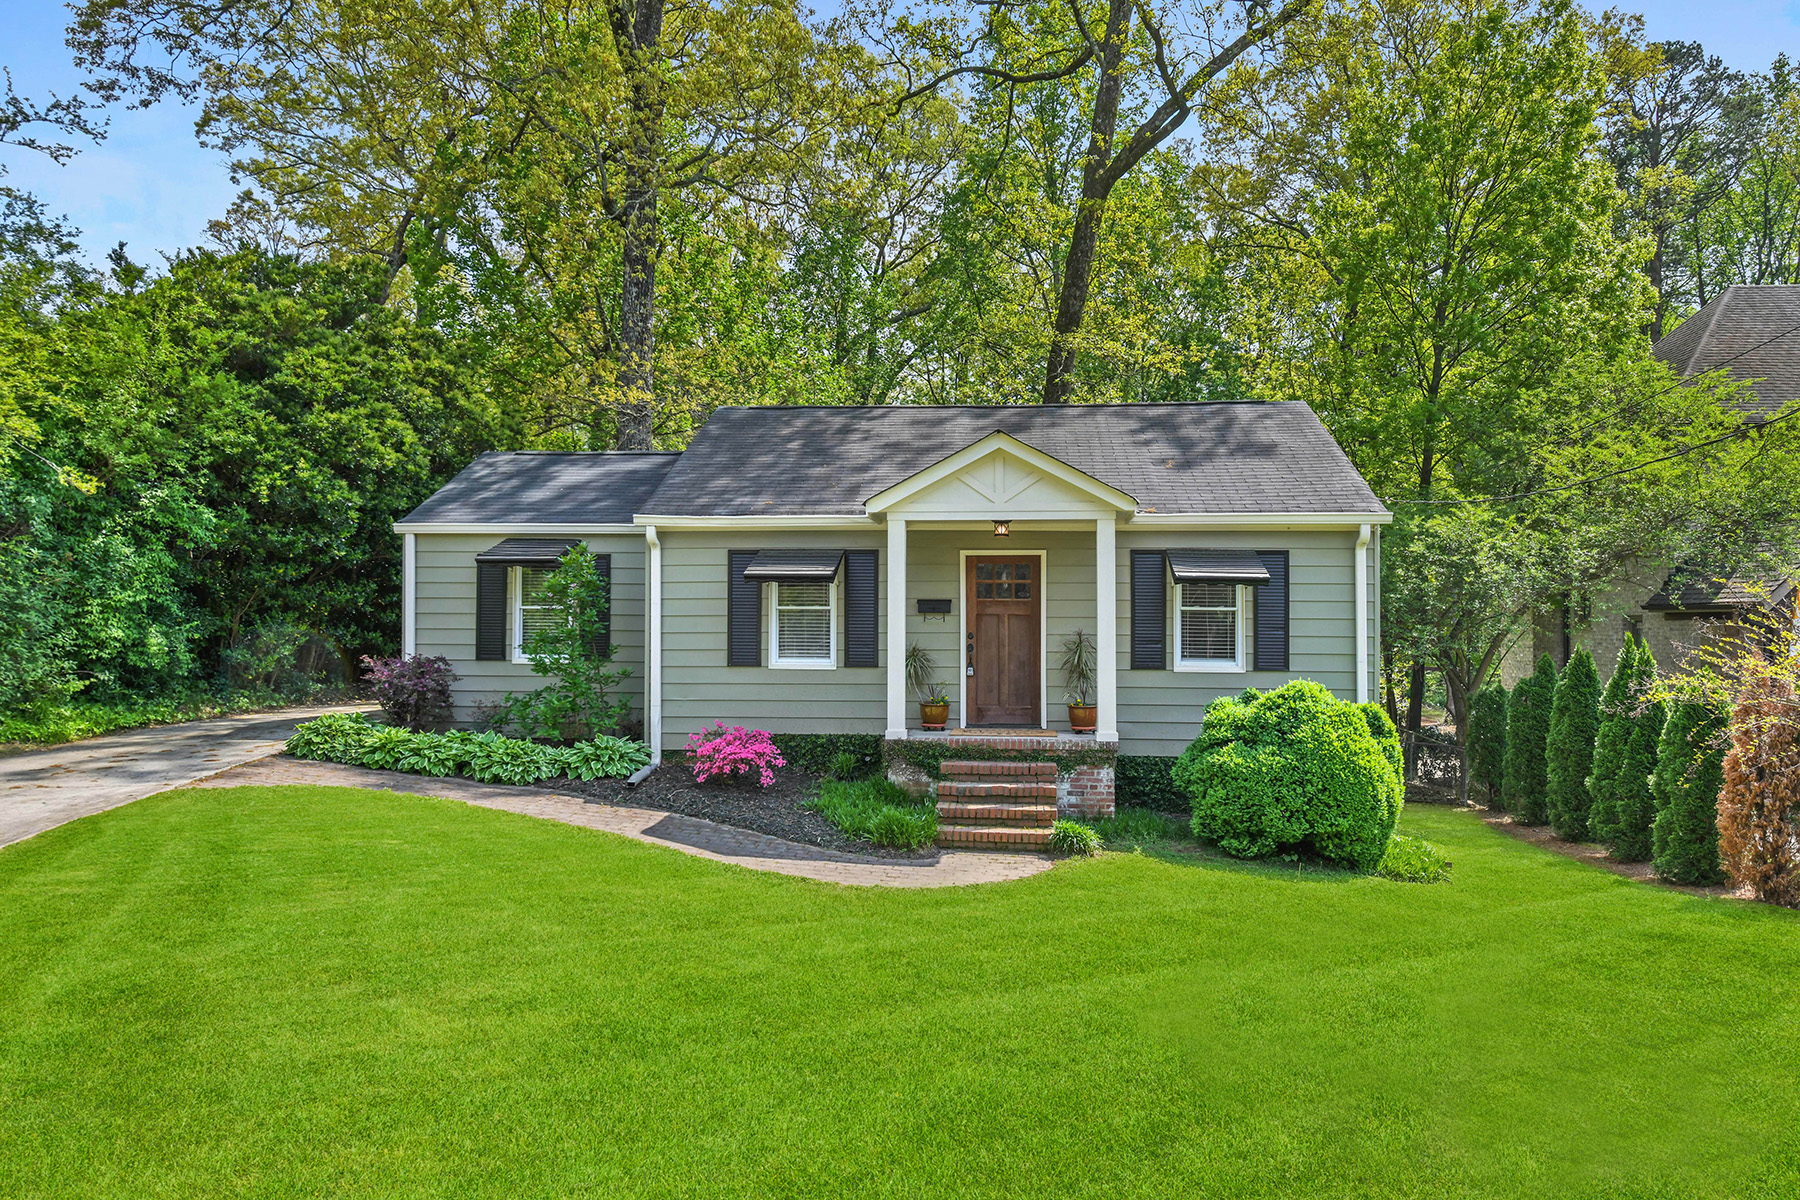 Single Family Homes for Sale at Charming Bungalow In Ashford Park Set On An Amazing Deep Level Fenced Lot 1851 9th Street Chamblee, Georgia 30341 United States